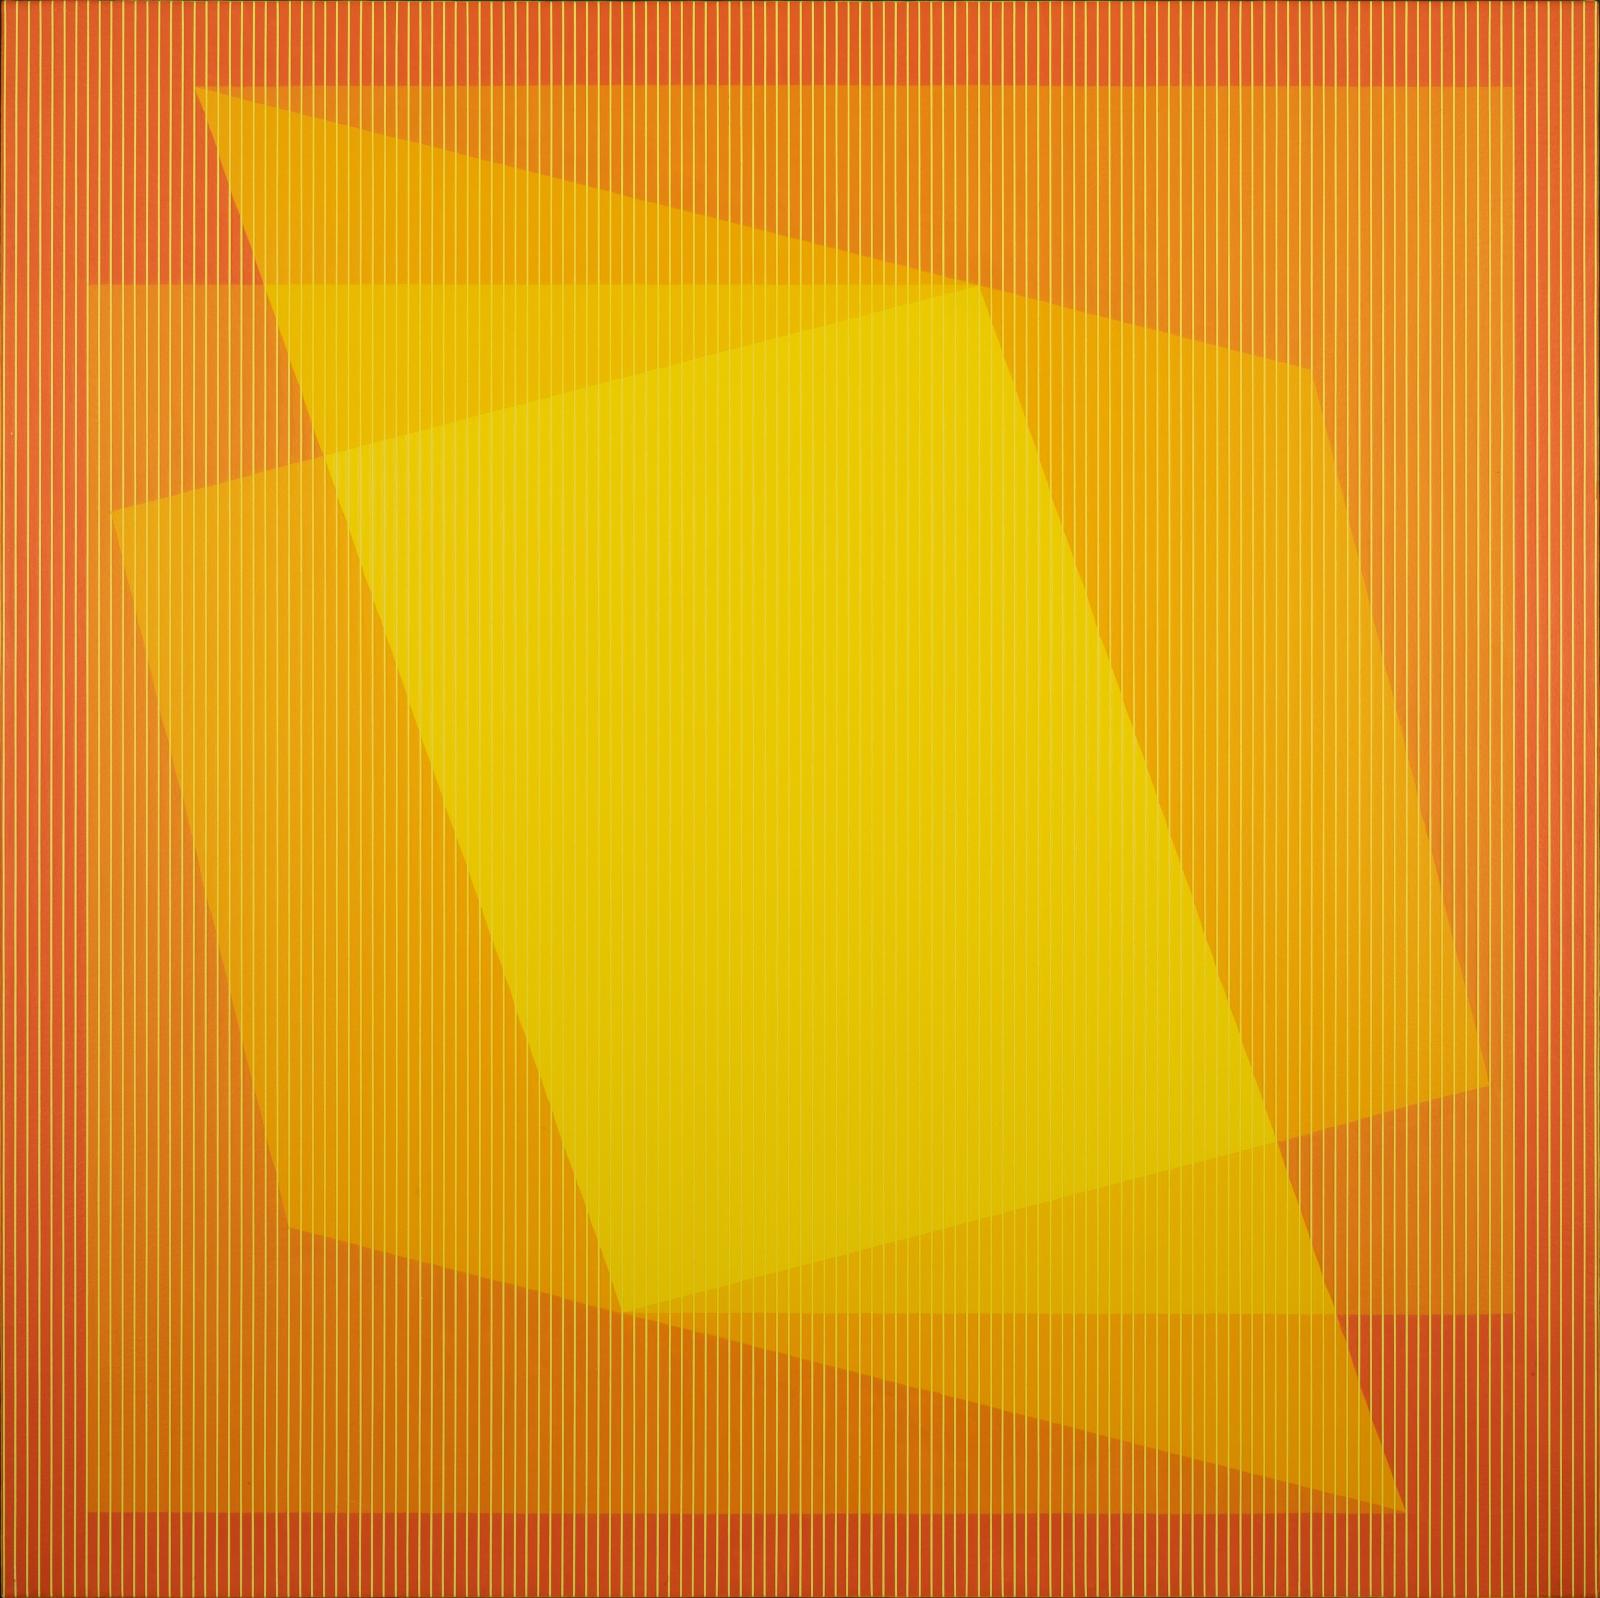 An optically vibrating geometric painting in oranges and yellows